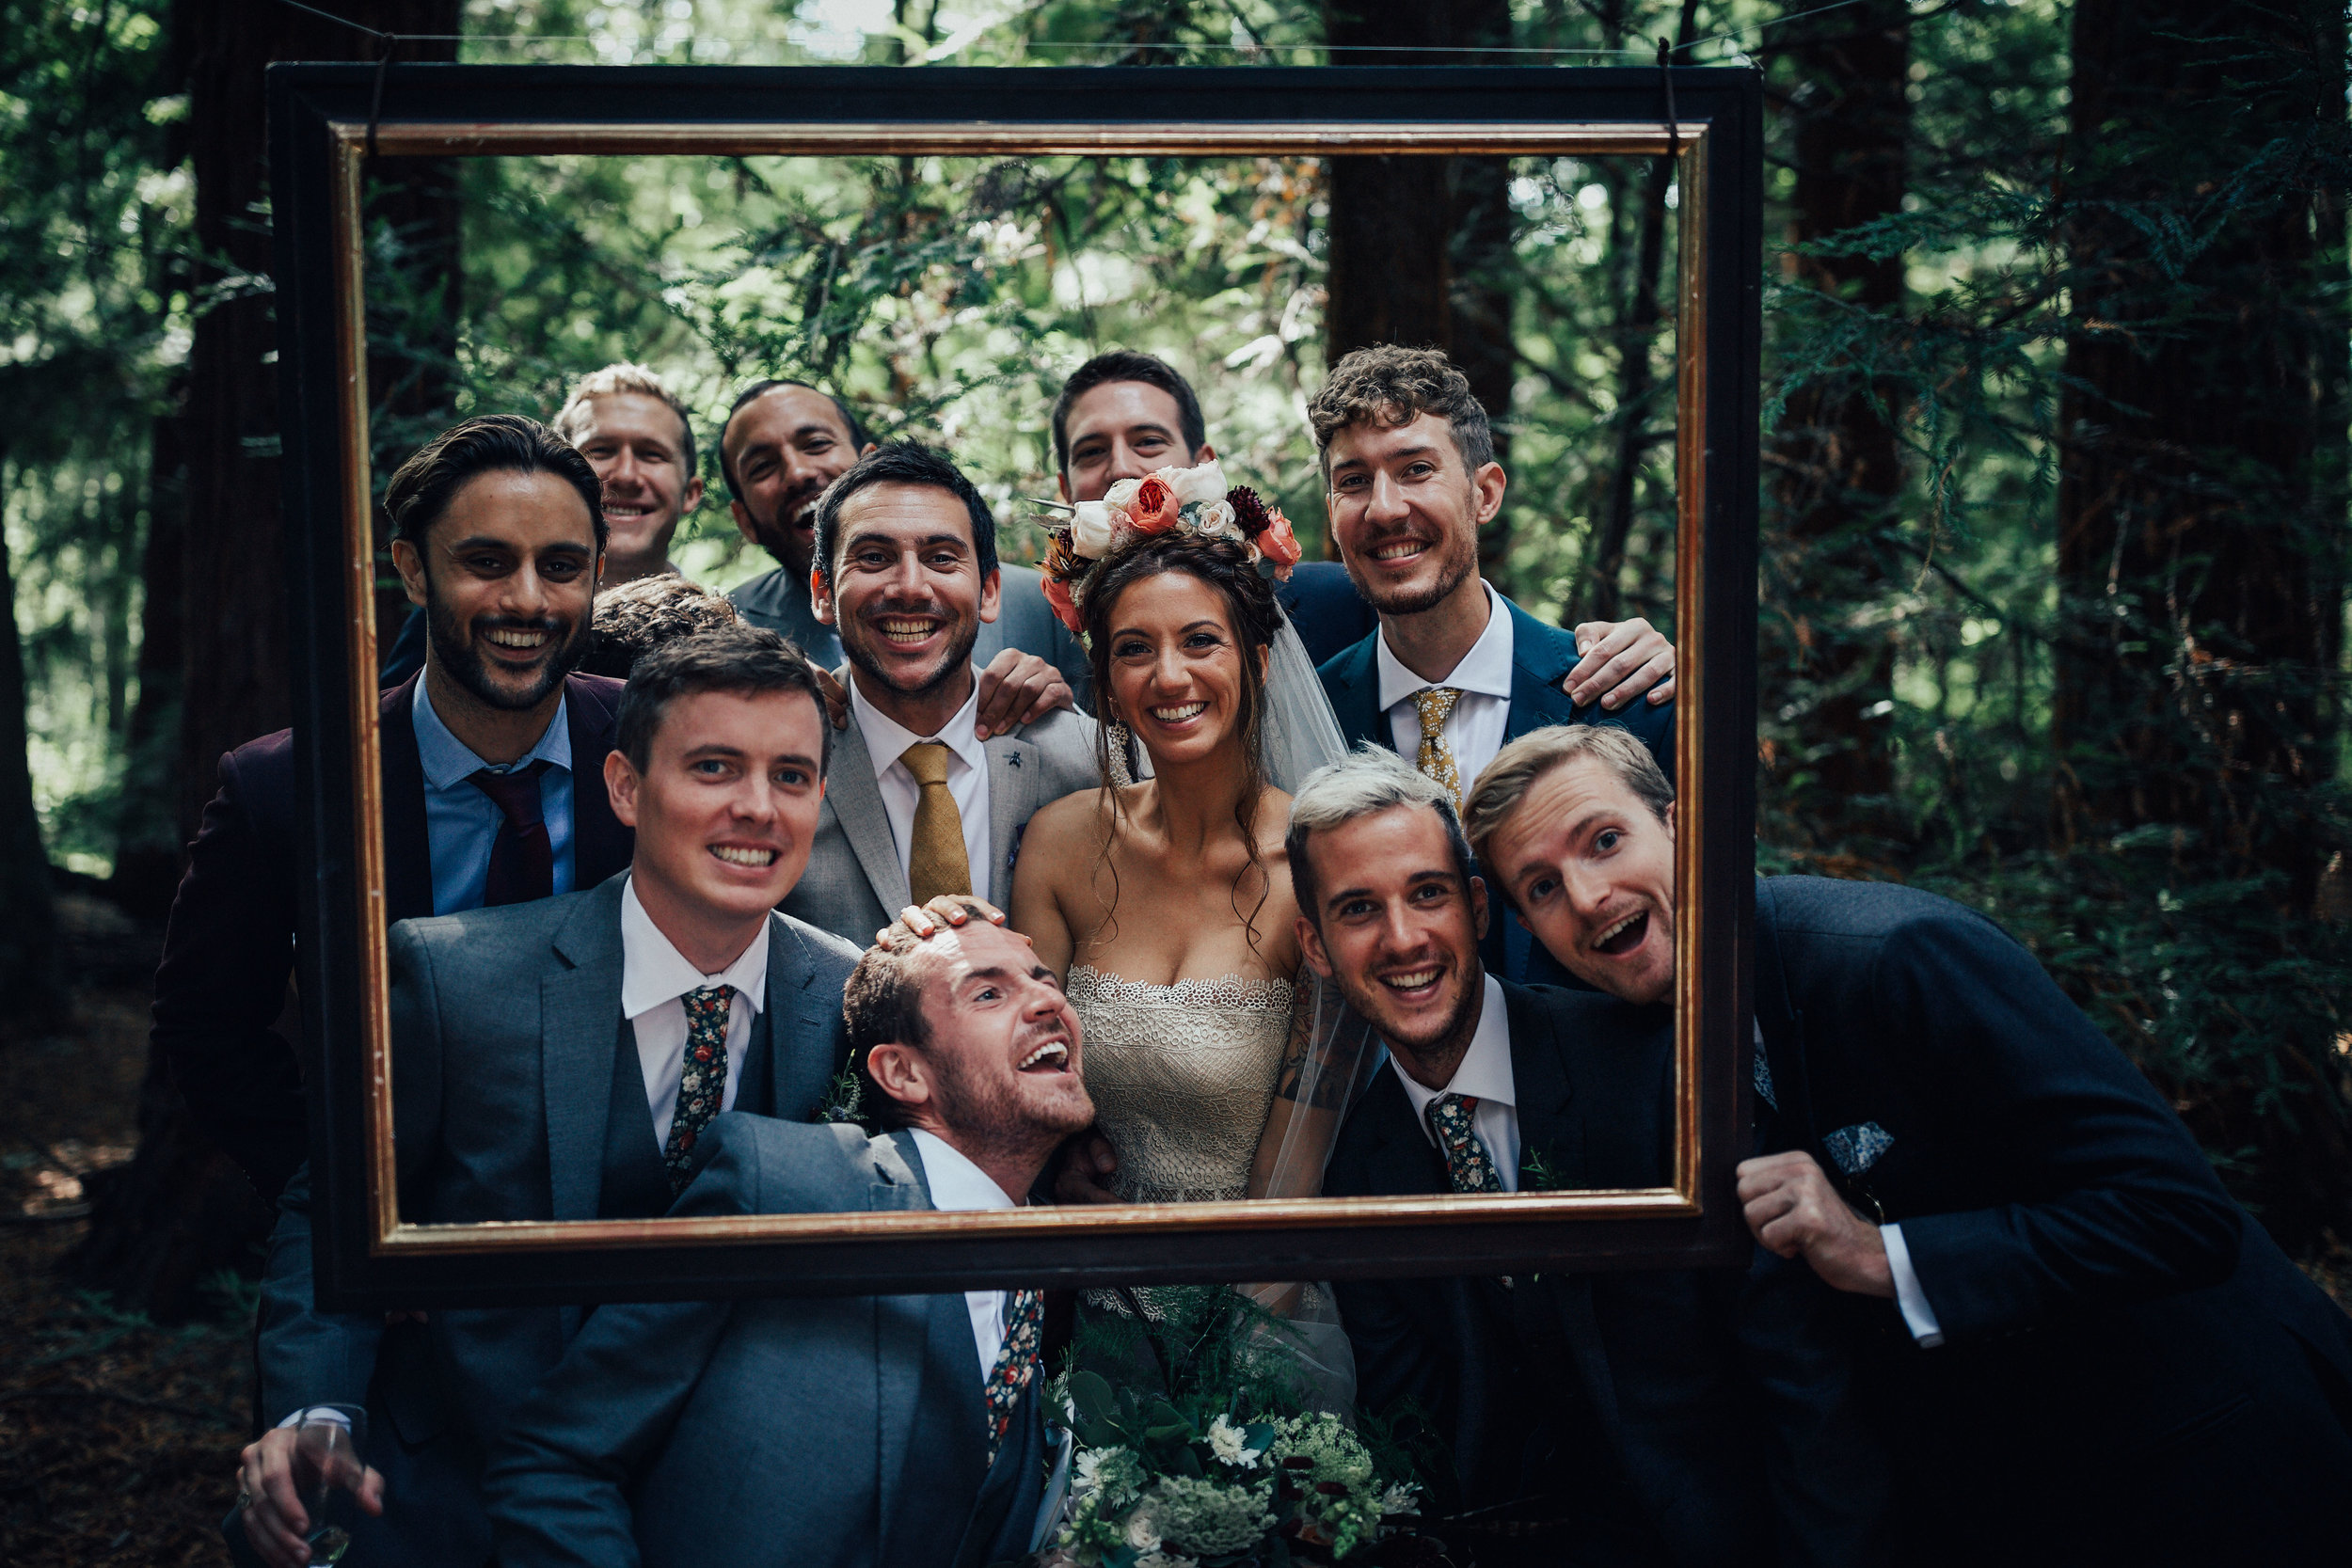 TWO_WOODS_ESTATE_WEDDING_PULBOROUGH_PJ_PHILLIPS_PHOTOGRAPHY_FRAN_&_GEORGE_127.jpg